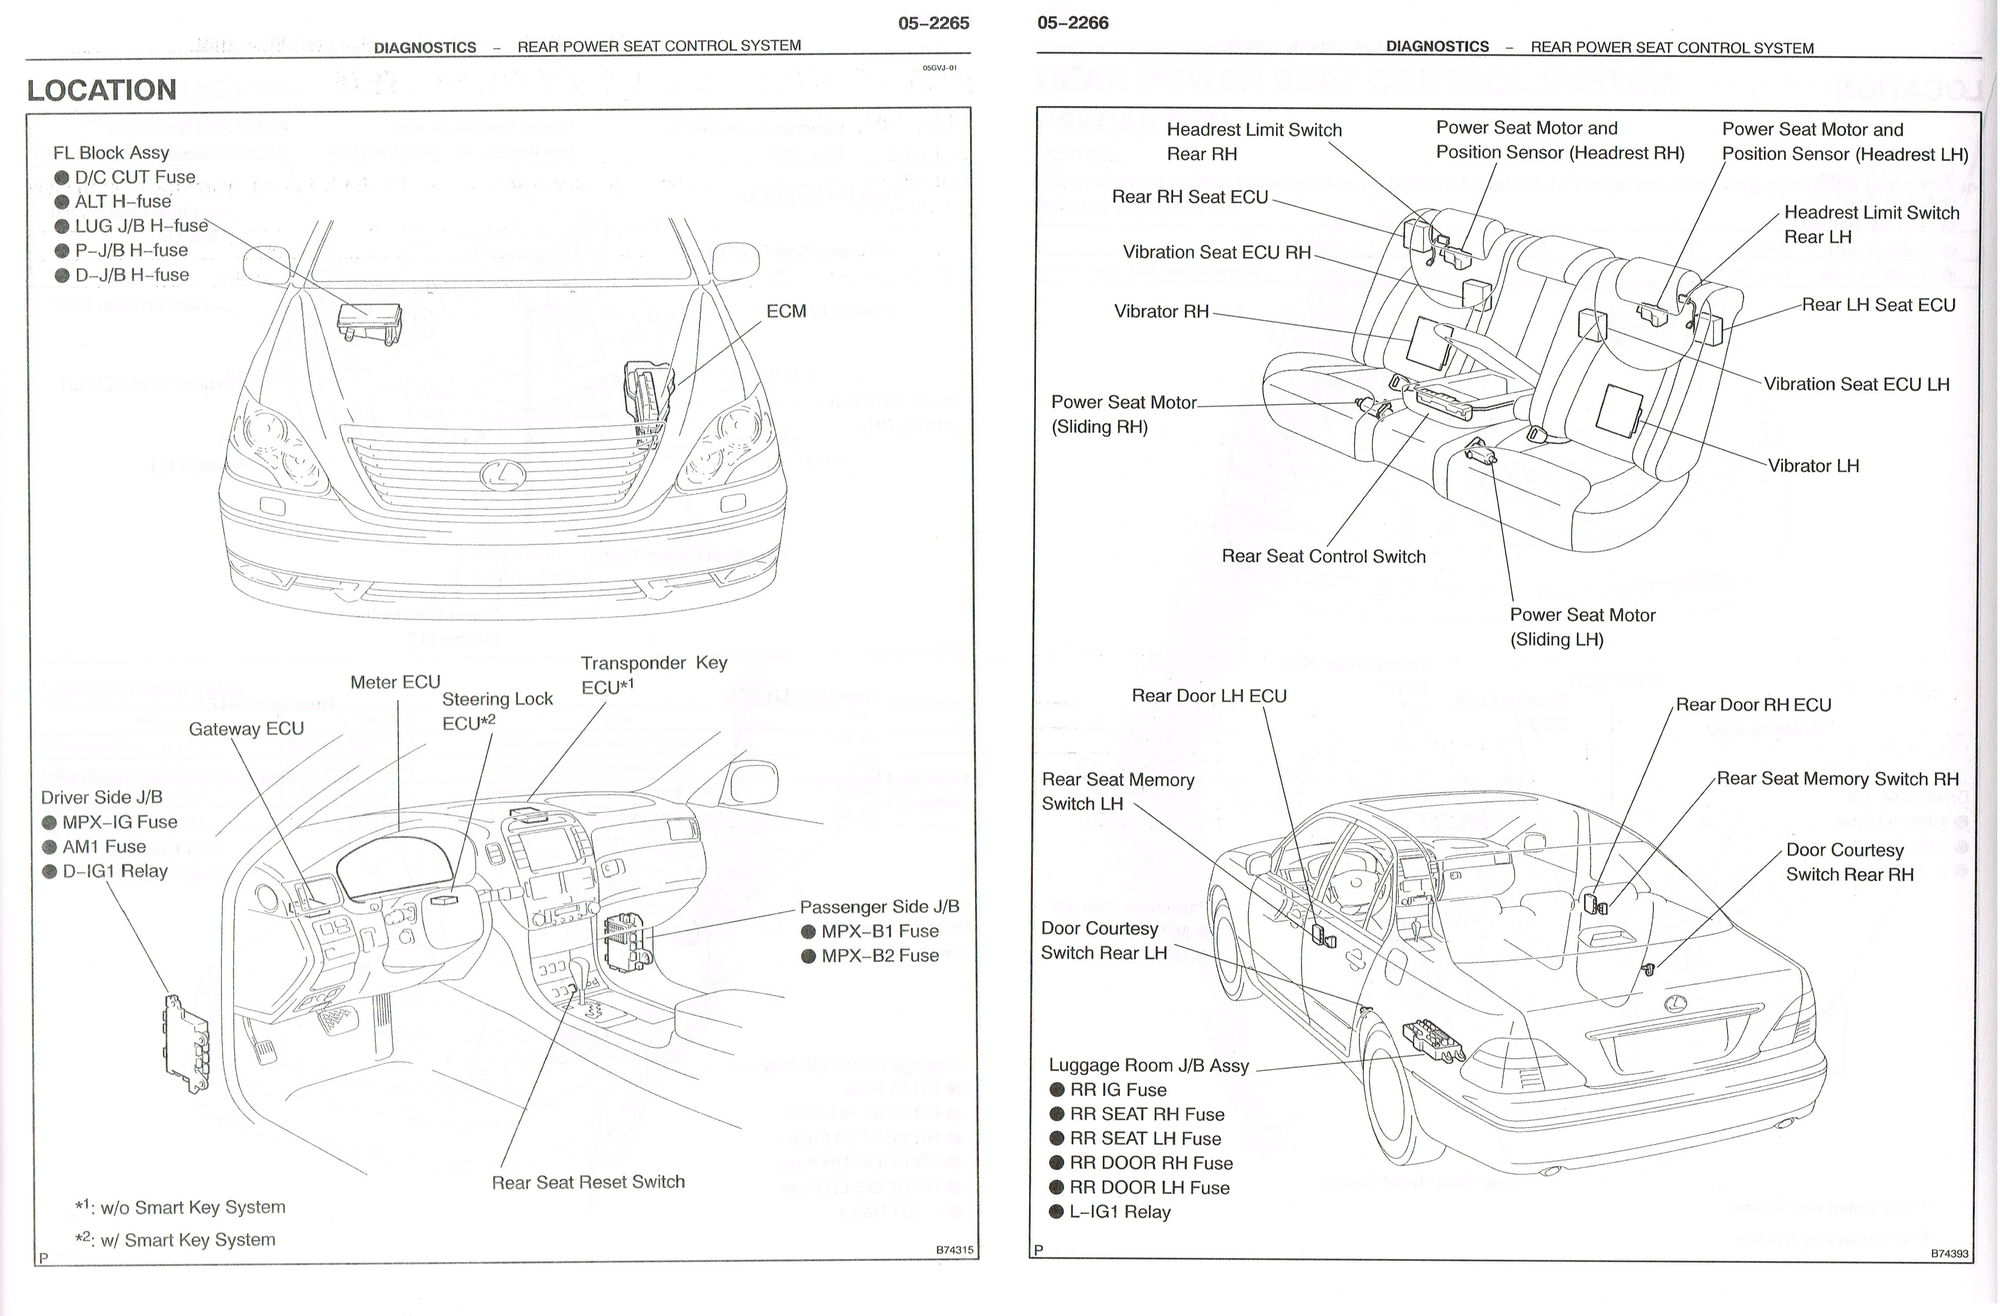 Lexus Sc300 Fuse Box Location. Lexus. Auto Fuse Box Diagram